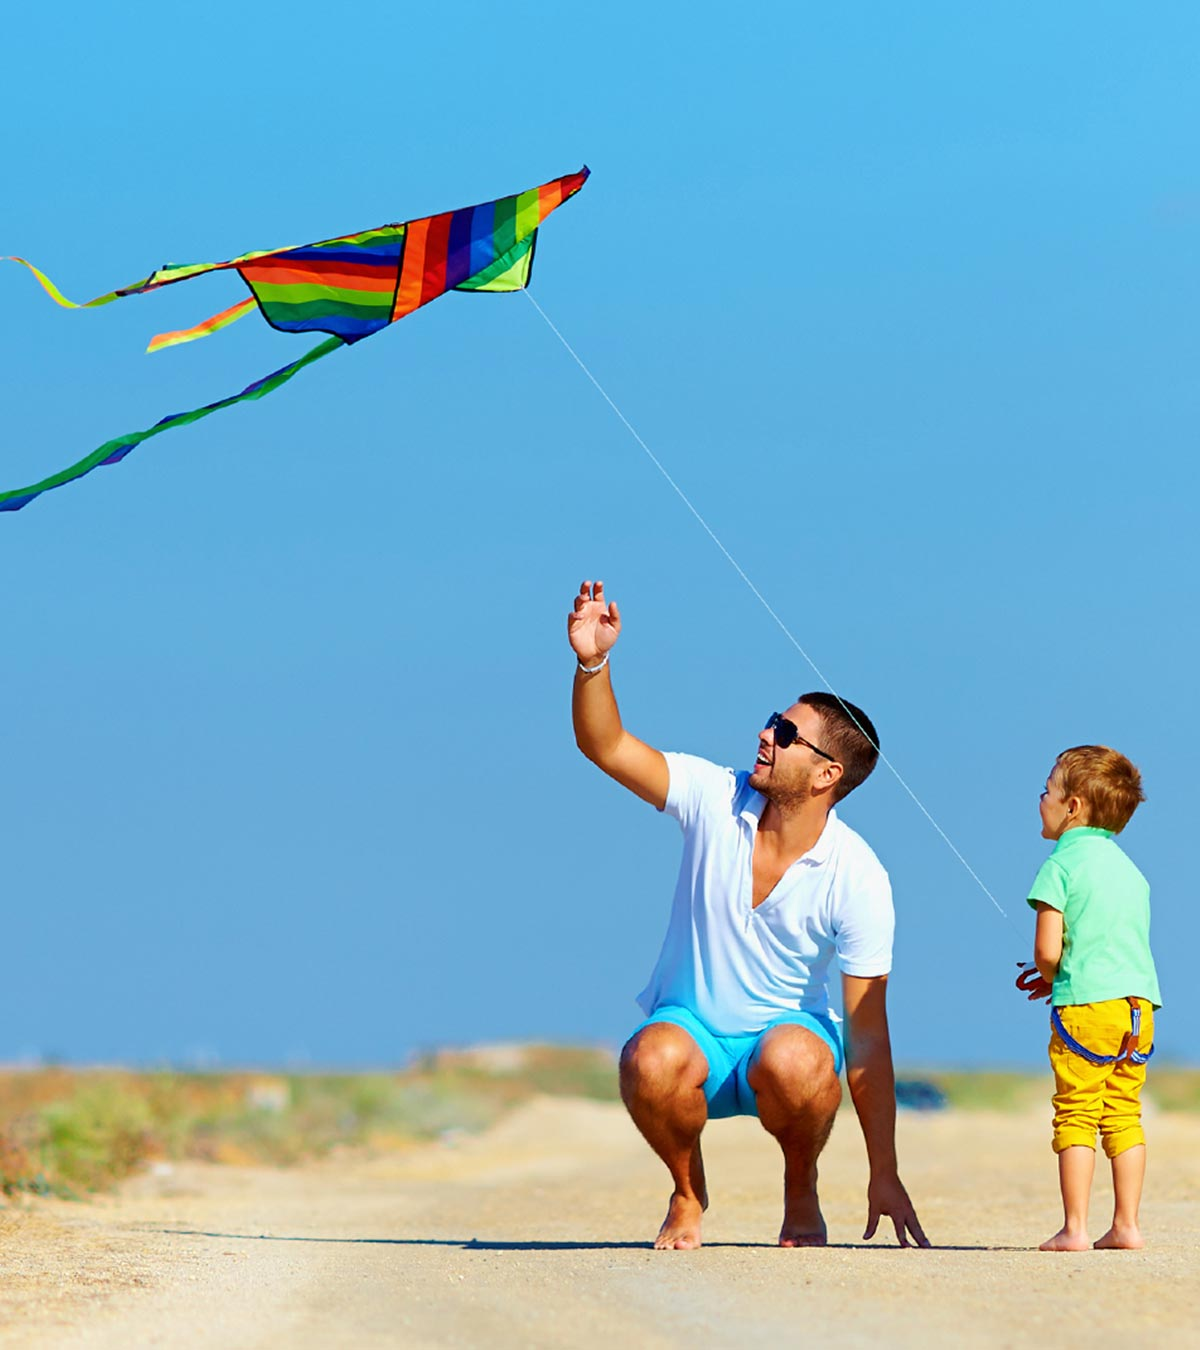 6 Easy Steps To Fly A Kite With Your Kids